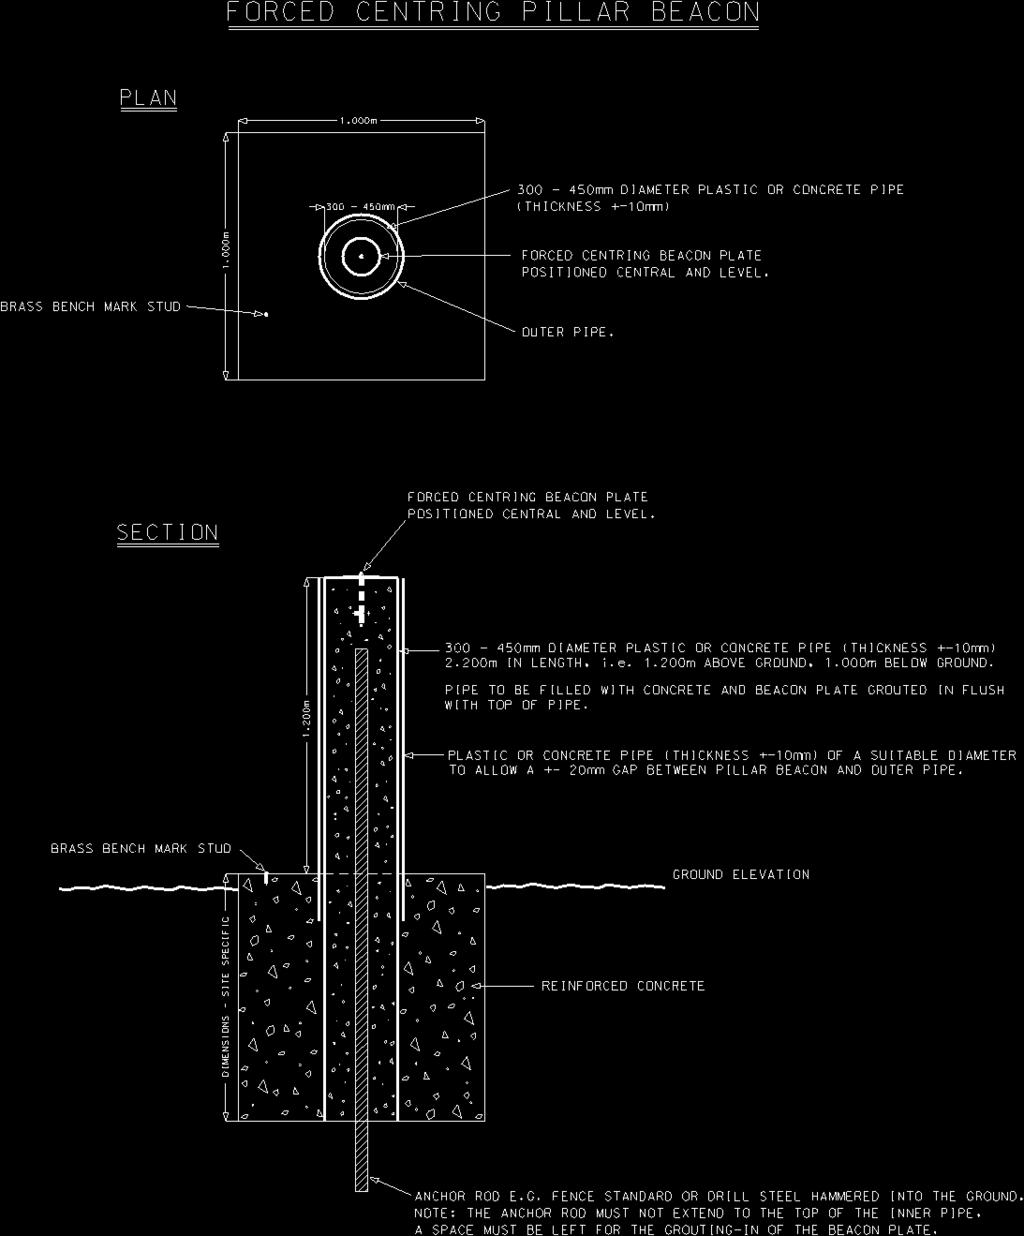 Figure 11 shows a typical forced centring pillar beacon design. It must be noted that the design of the pillar beacon foundation is site specific with regard to dimension specifications.